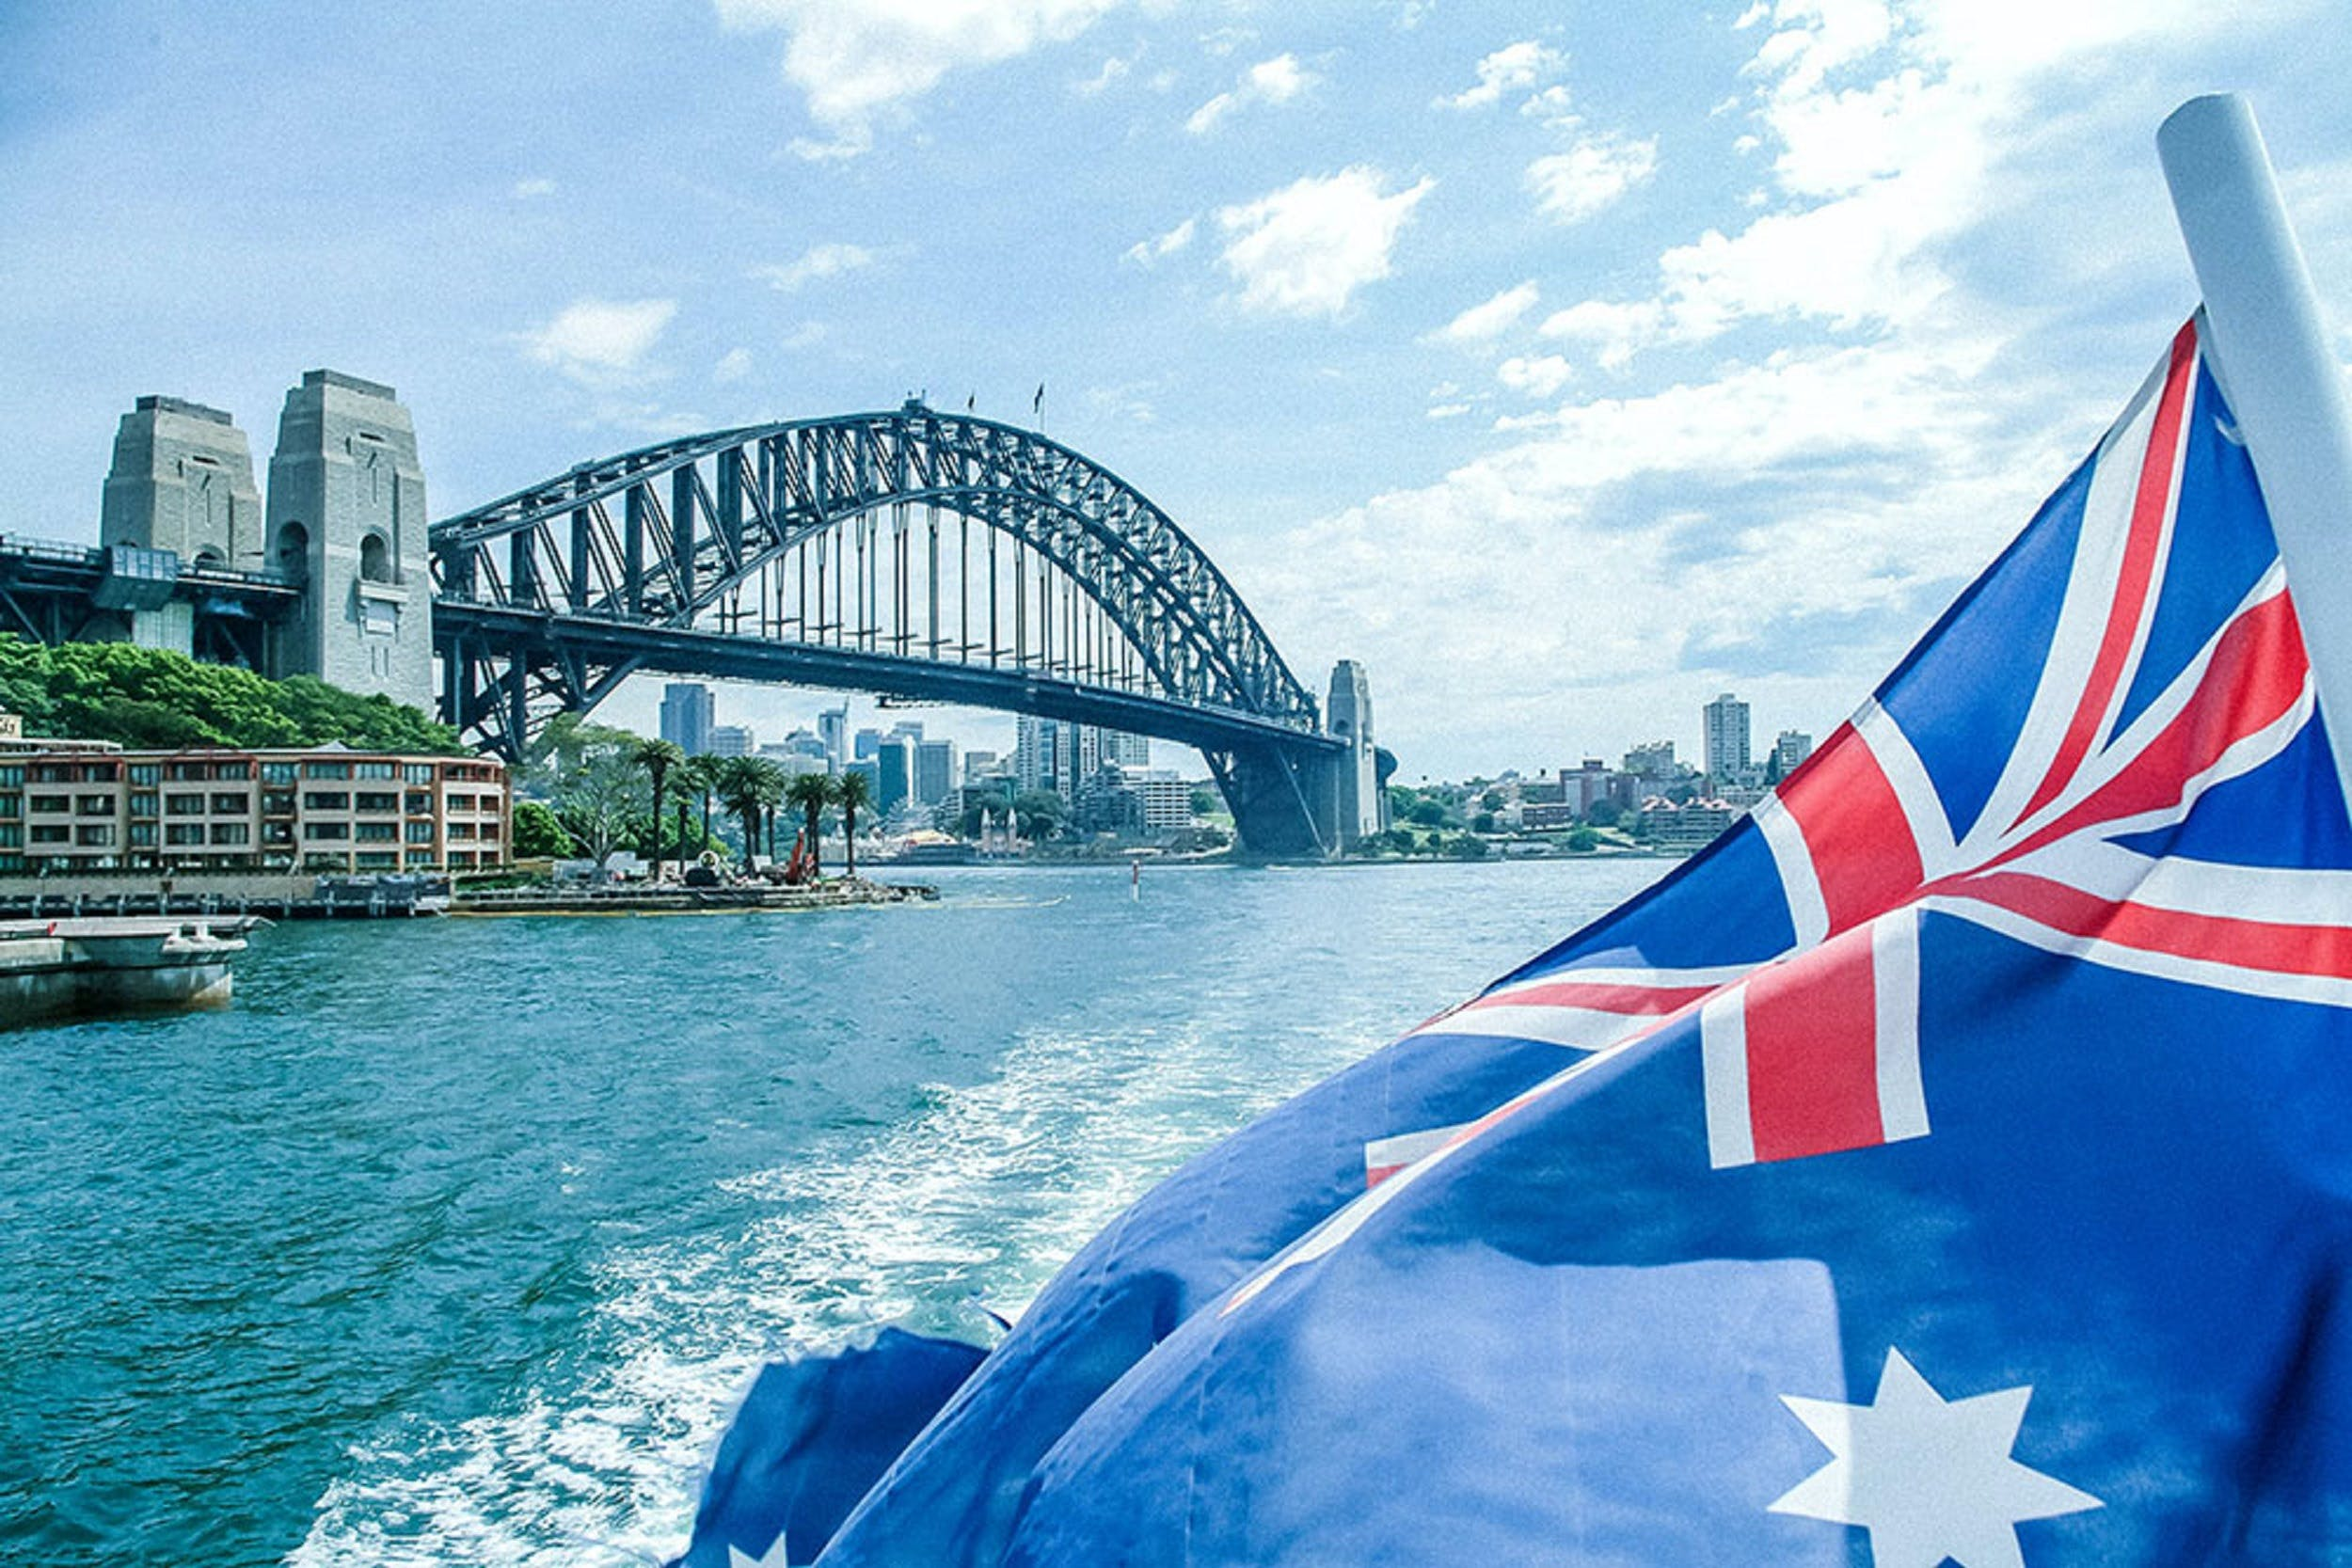 Australia Day Lunch and Dinner Cruises On Sydney Harbour with Sydney Showboats - Tourism Bookings